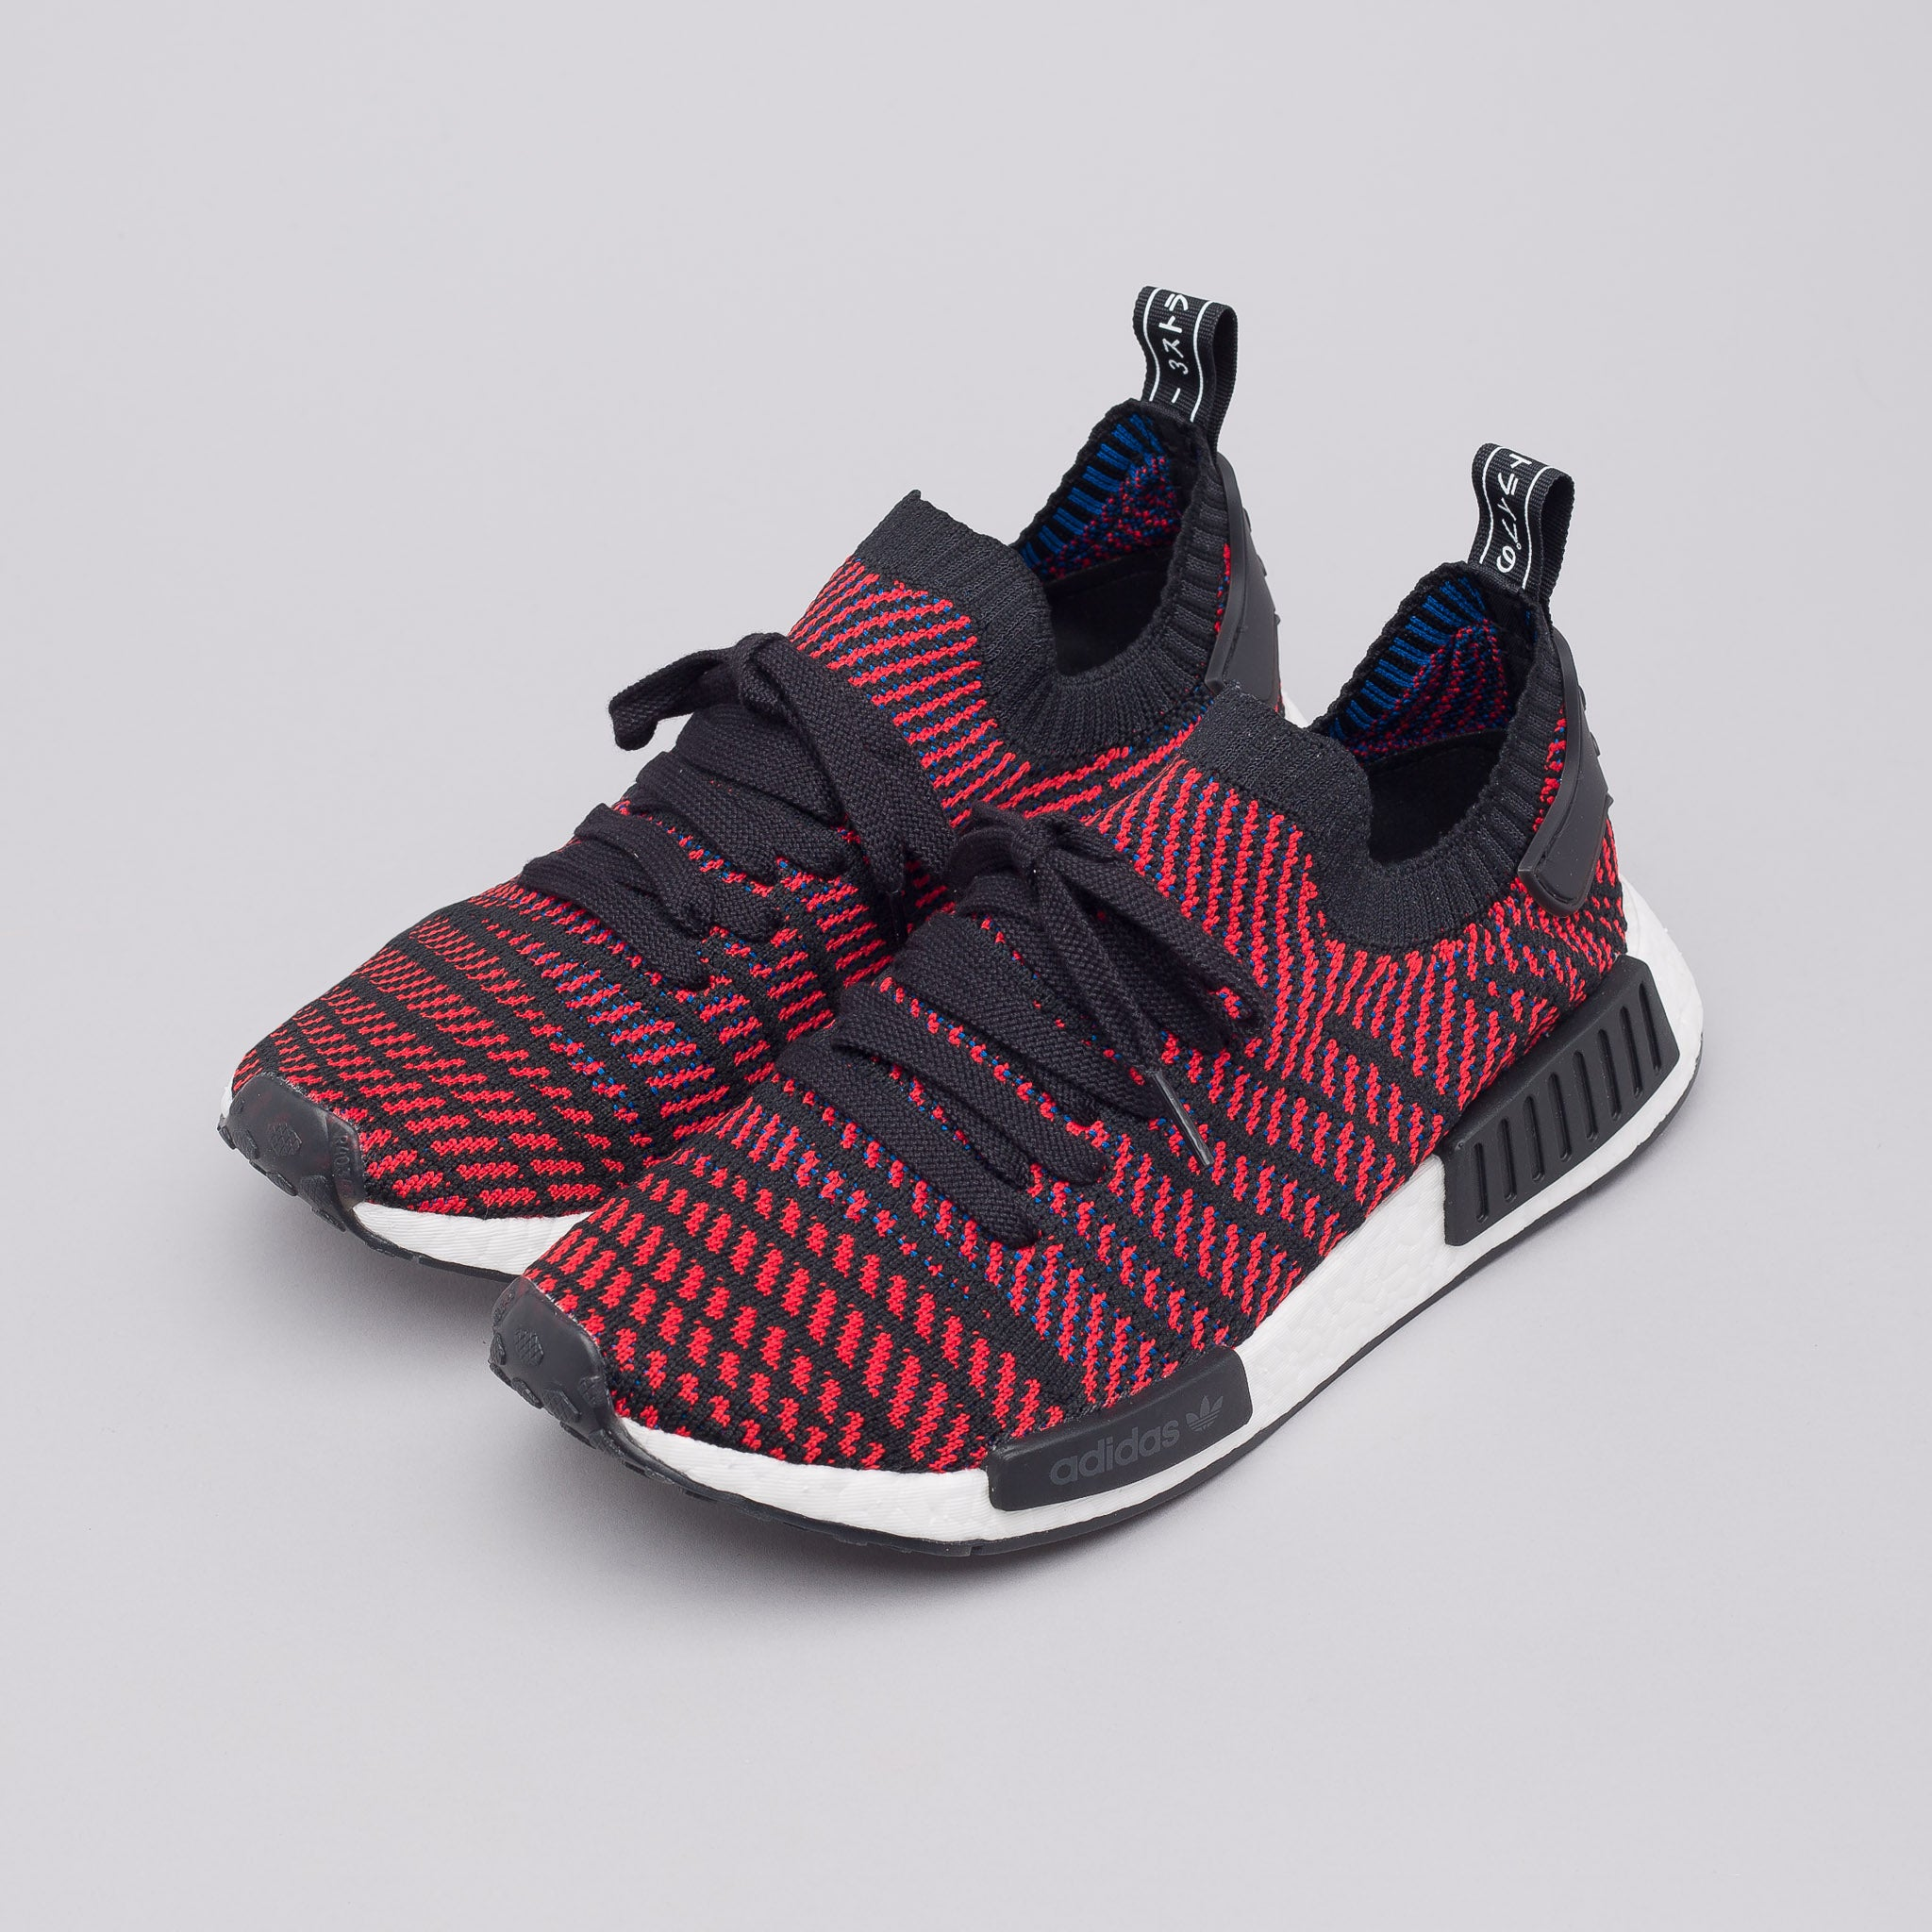 d947bd9a0 Buy Adidas Cheap NMD NMD R1 PK Boost Shoes for Sale